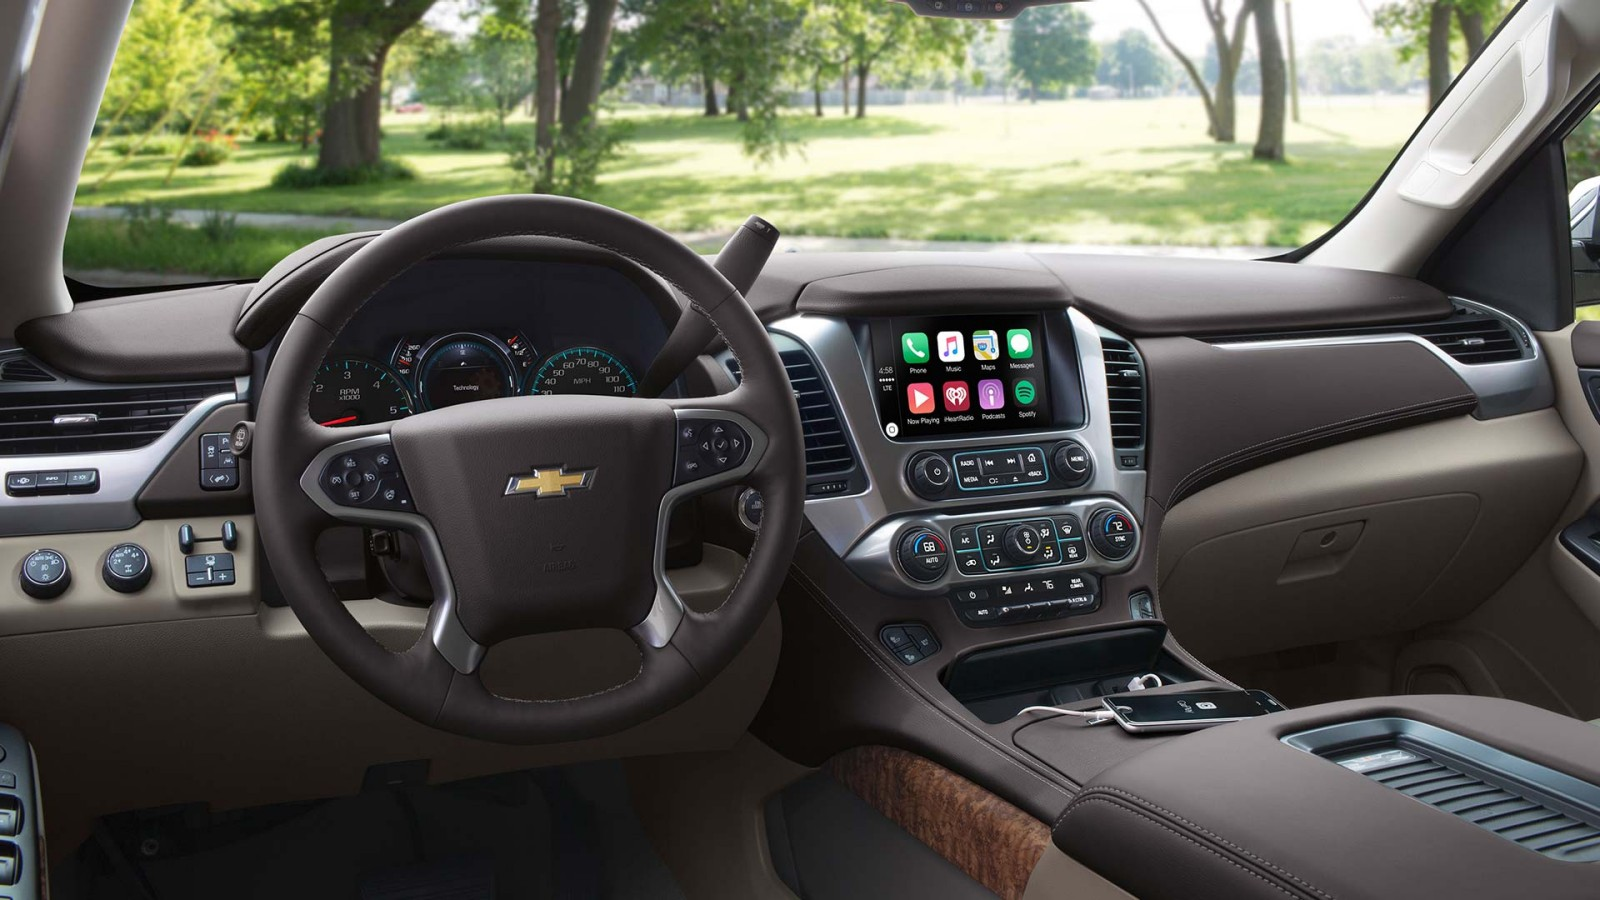 New Chevrolet Tahoe Interior main image